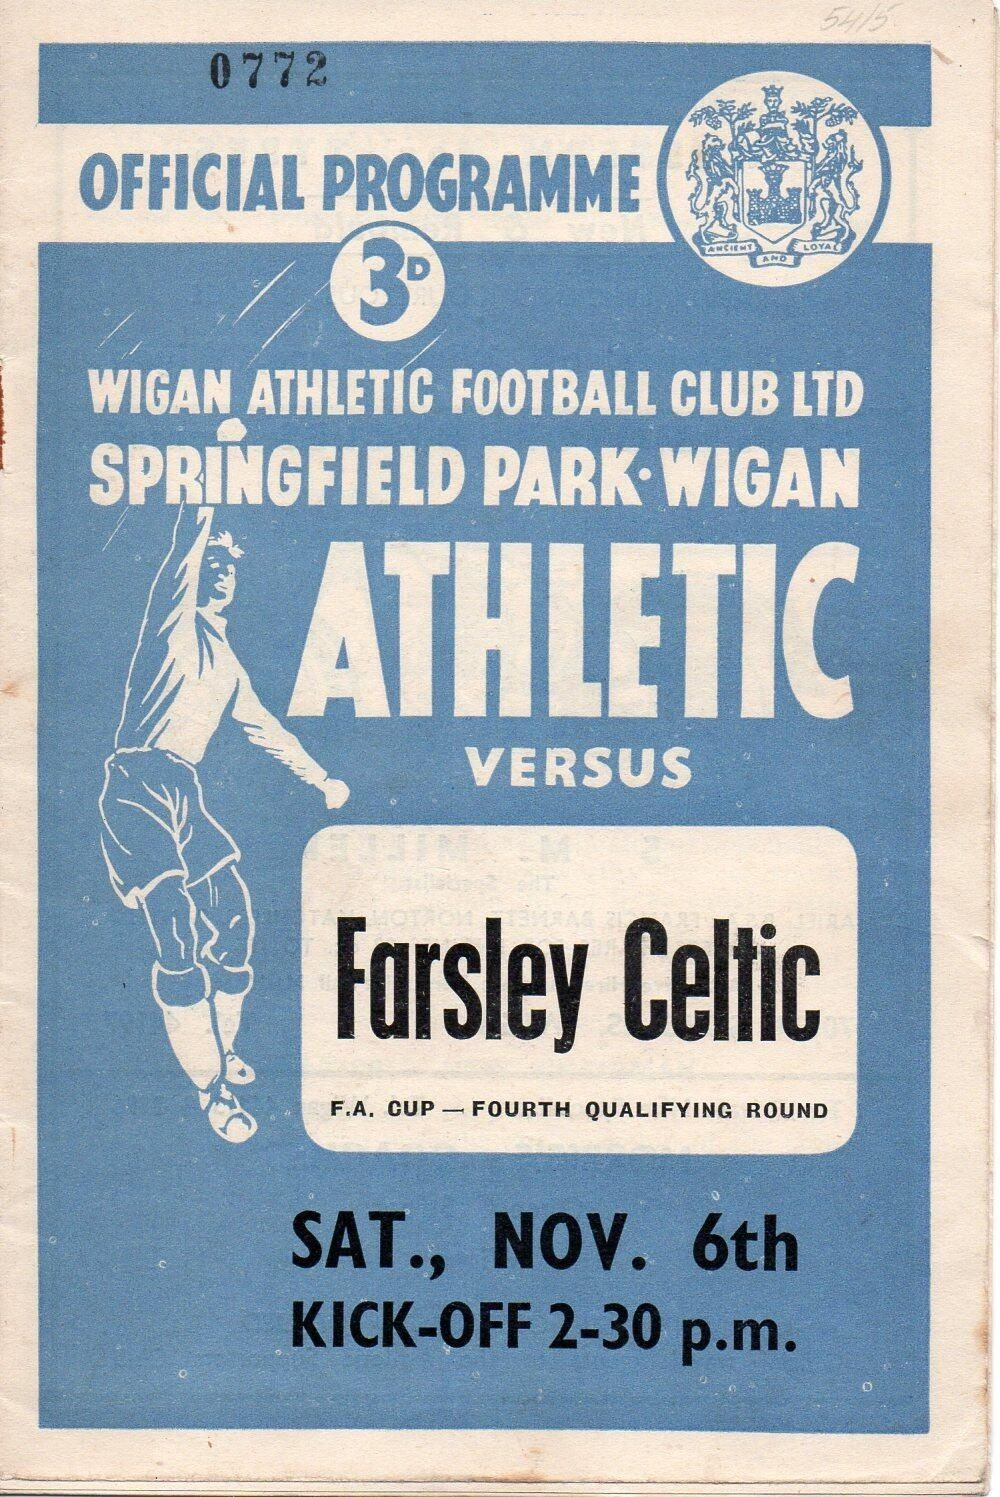 Wigan Ath V Farsley Celtic programme. Anybody know what year this was? Certainly pre decimal currency!